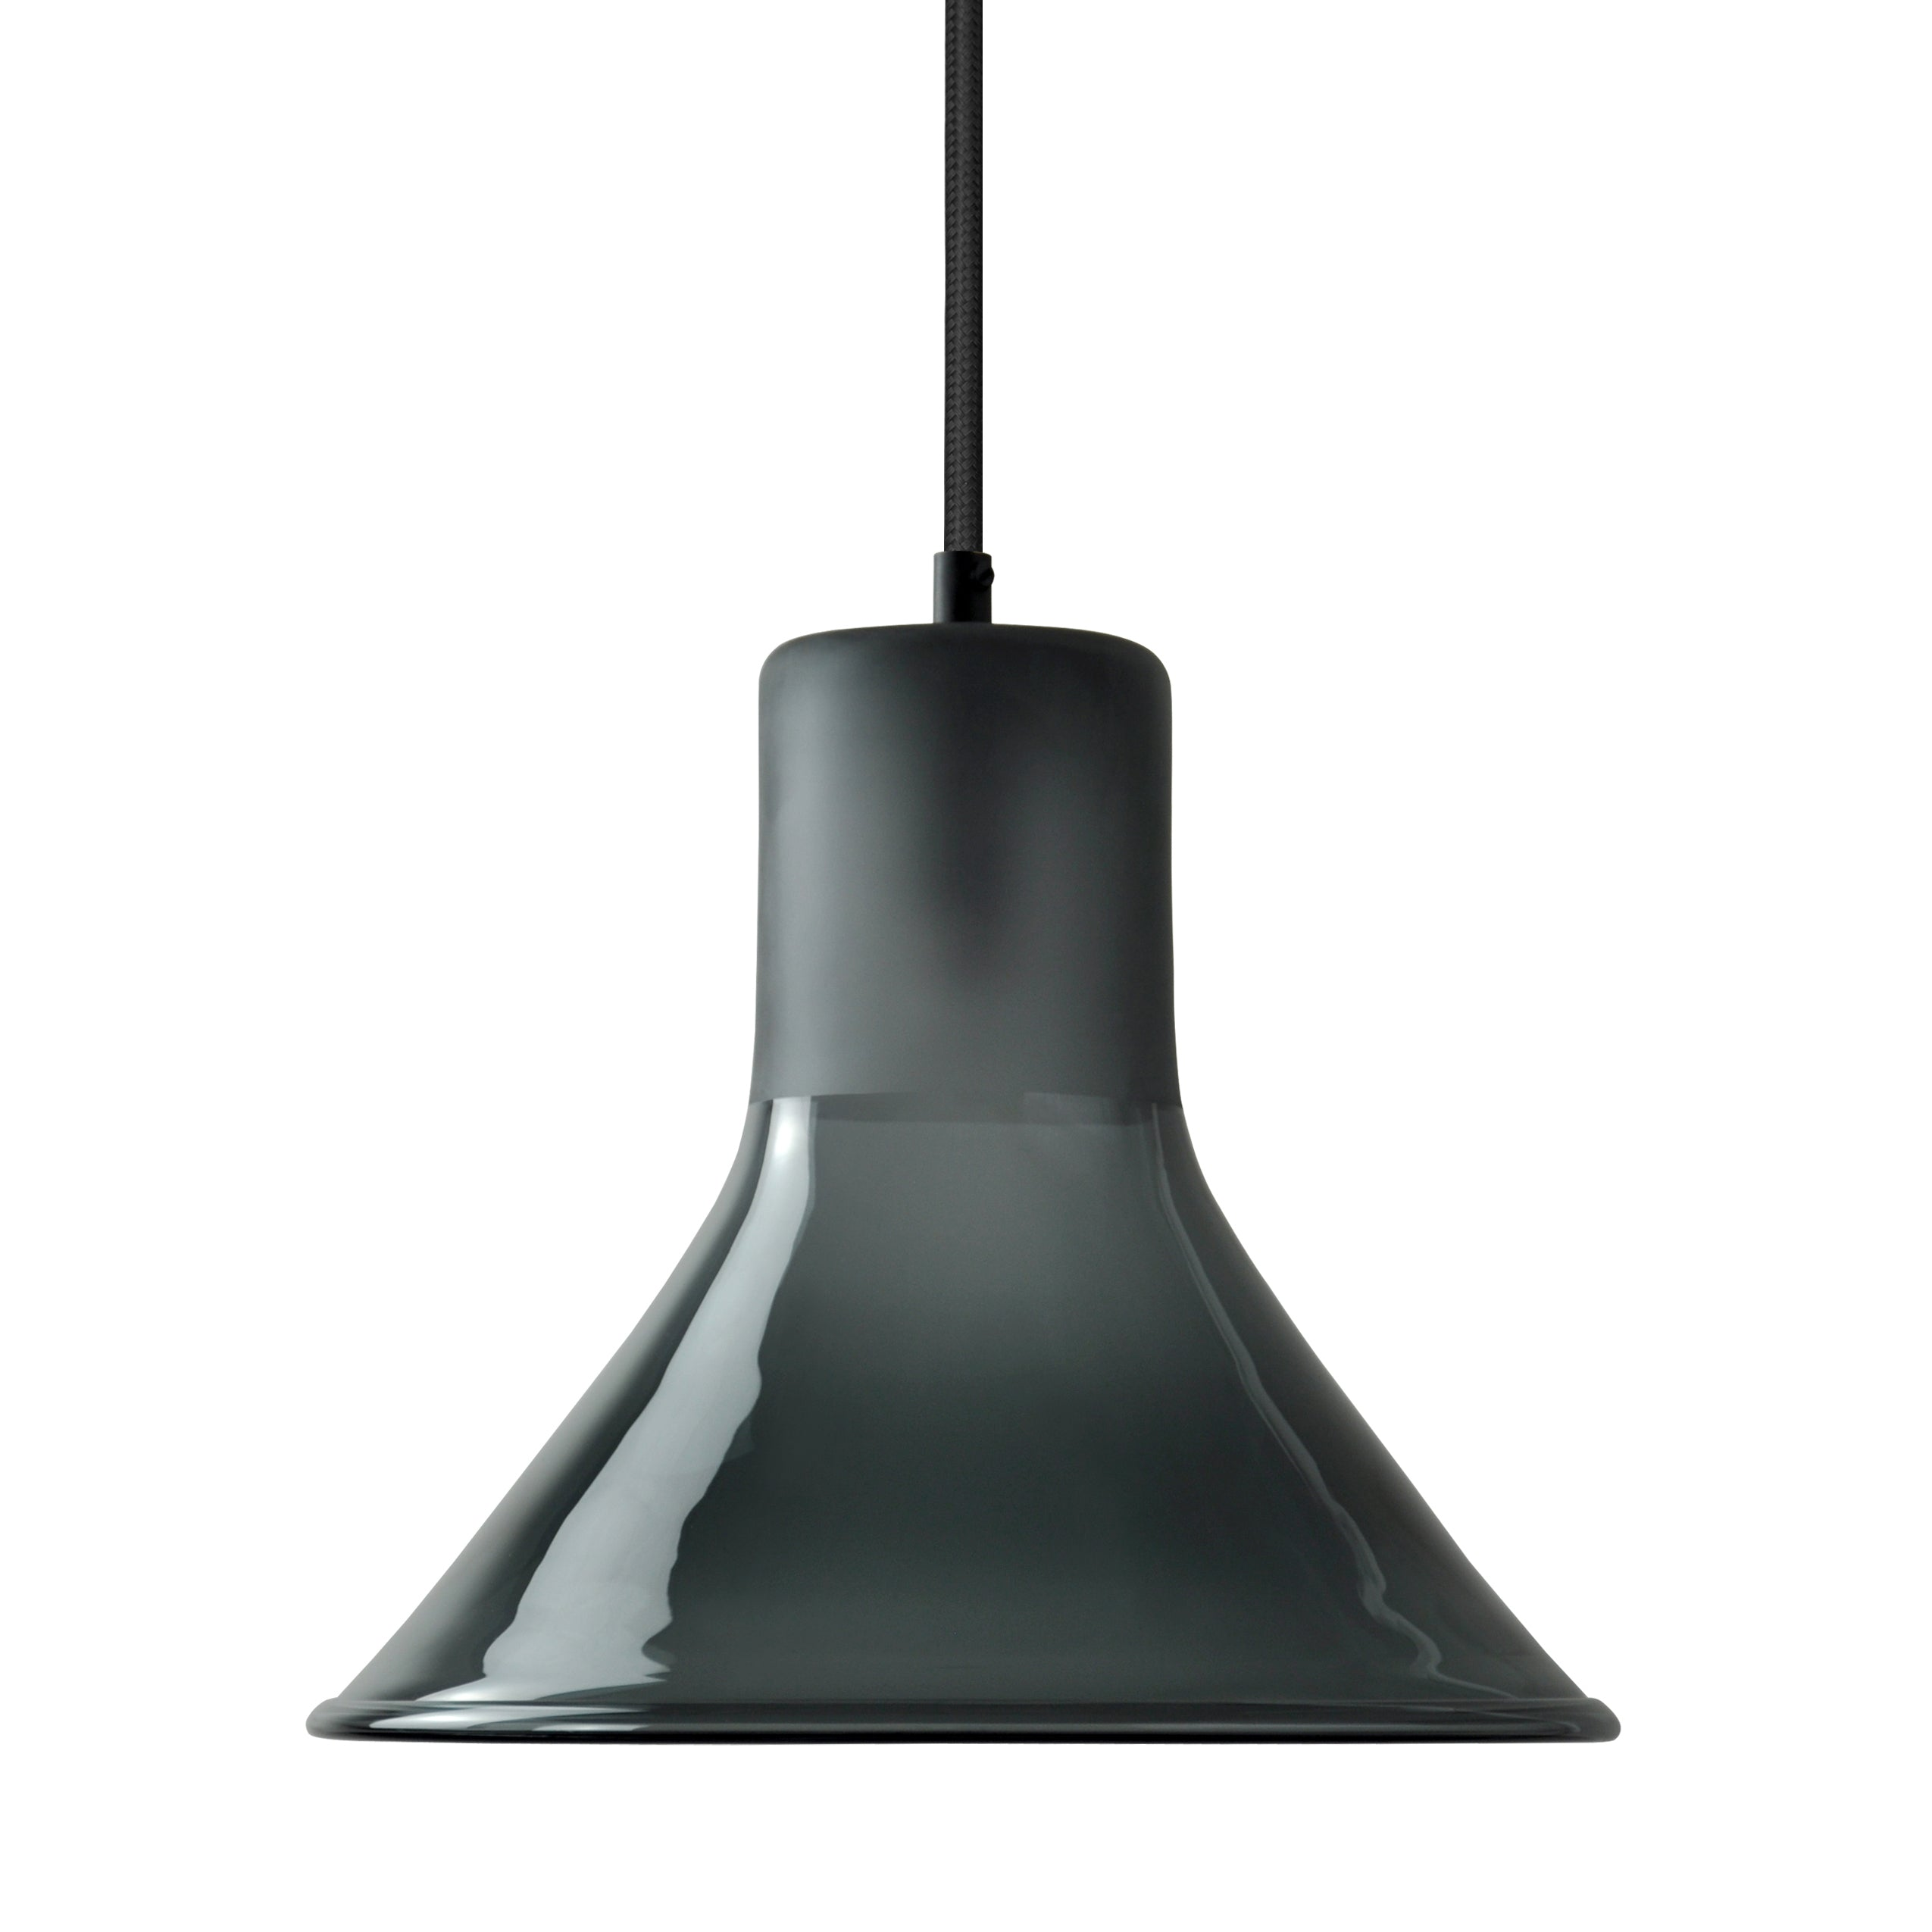 Mineheart Funnel glass pendant light in blue smoke by Young & Battaglia from Warehouse Home